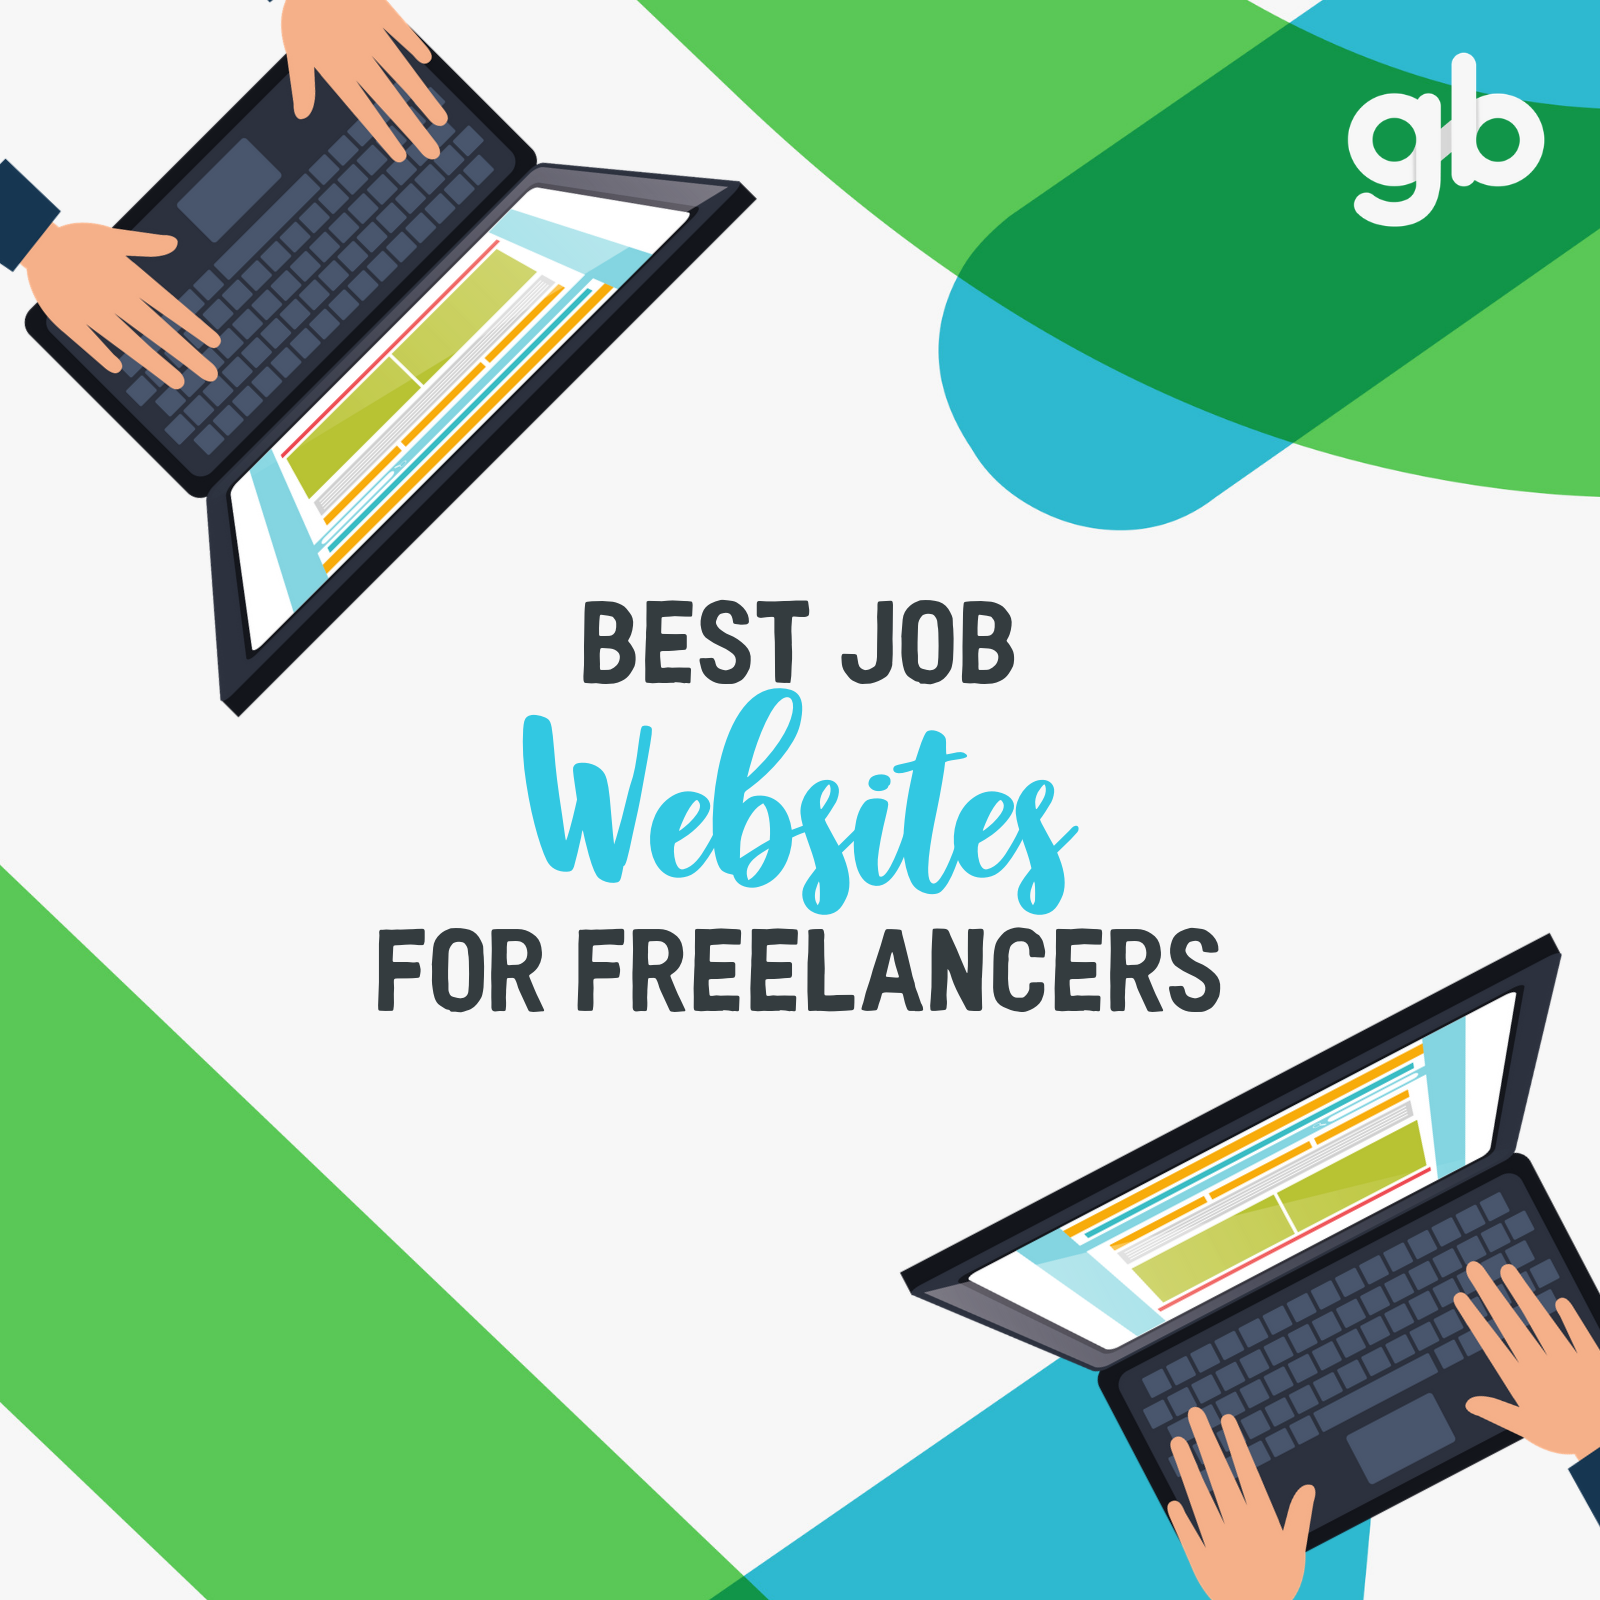 #8. Ready to find an awesome remote job? Here's a complete list of over 100 of the best job websites for freelancers around the world - not just the US and Canada! -